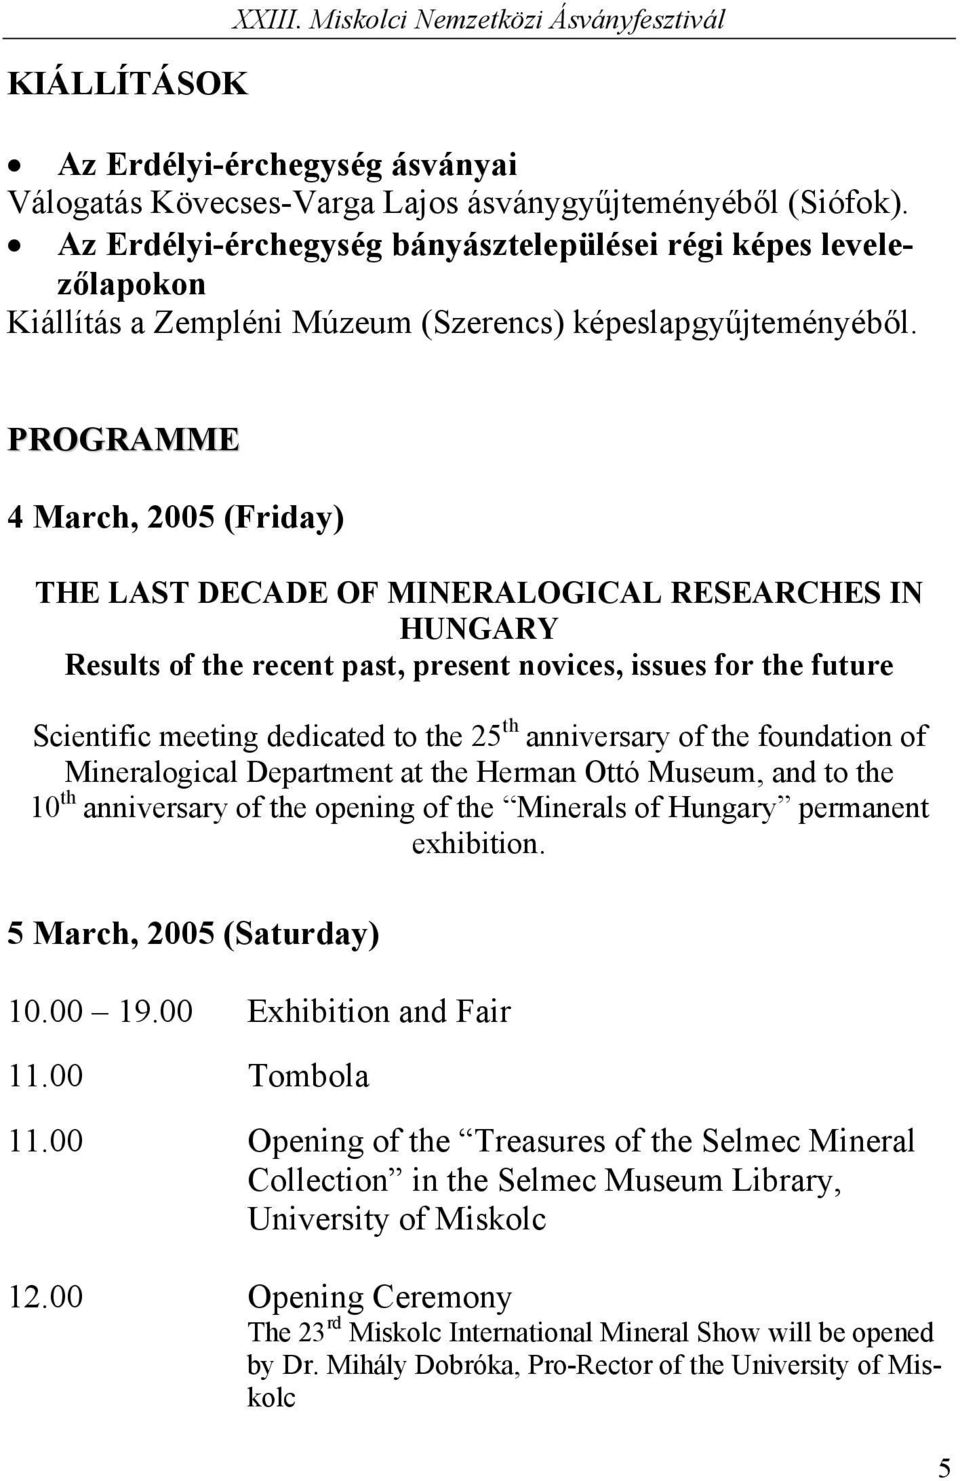 PROGRAMME 4 March, 2005 (Friday) THE LAST DECADE OF MINERALOGICAL RESEARCHES IN HUNGARY Results of the recent past, present novices, issues for the future Scientific meeting dedicated to the 25 th